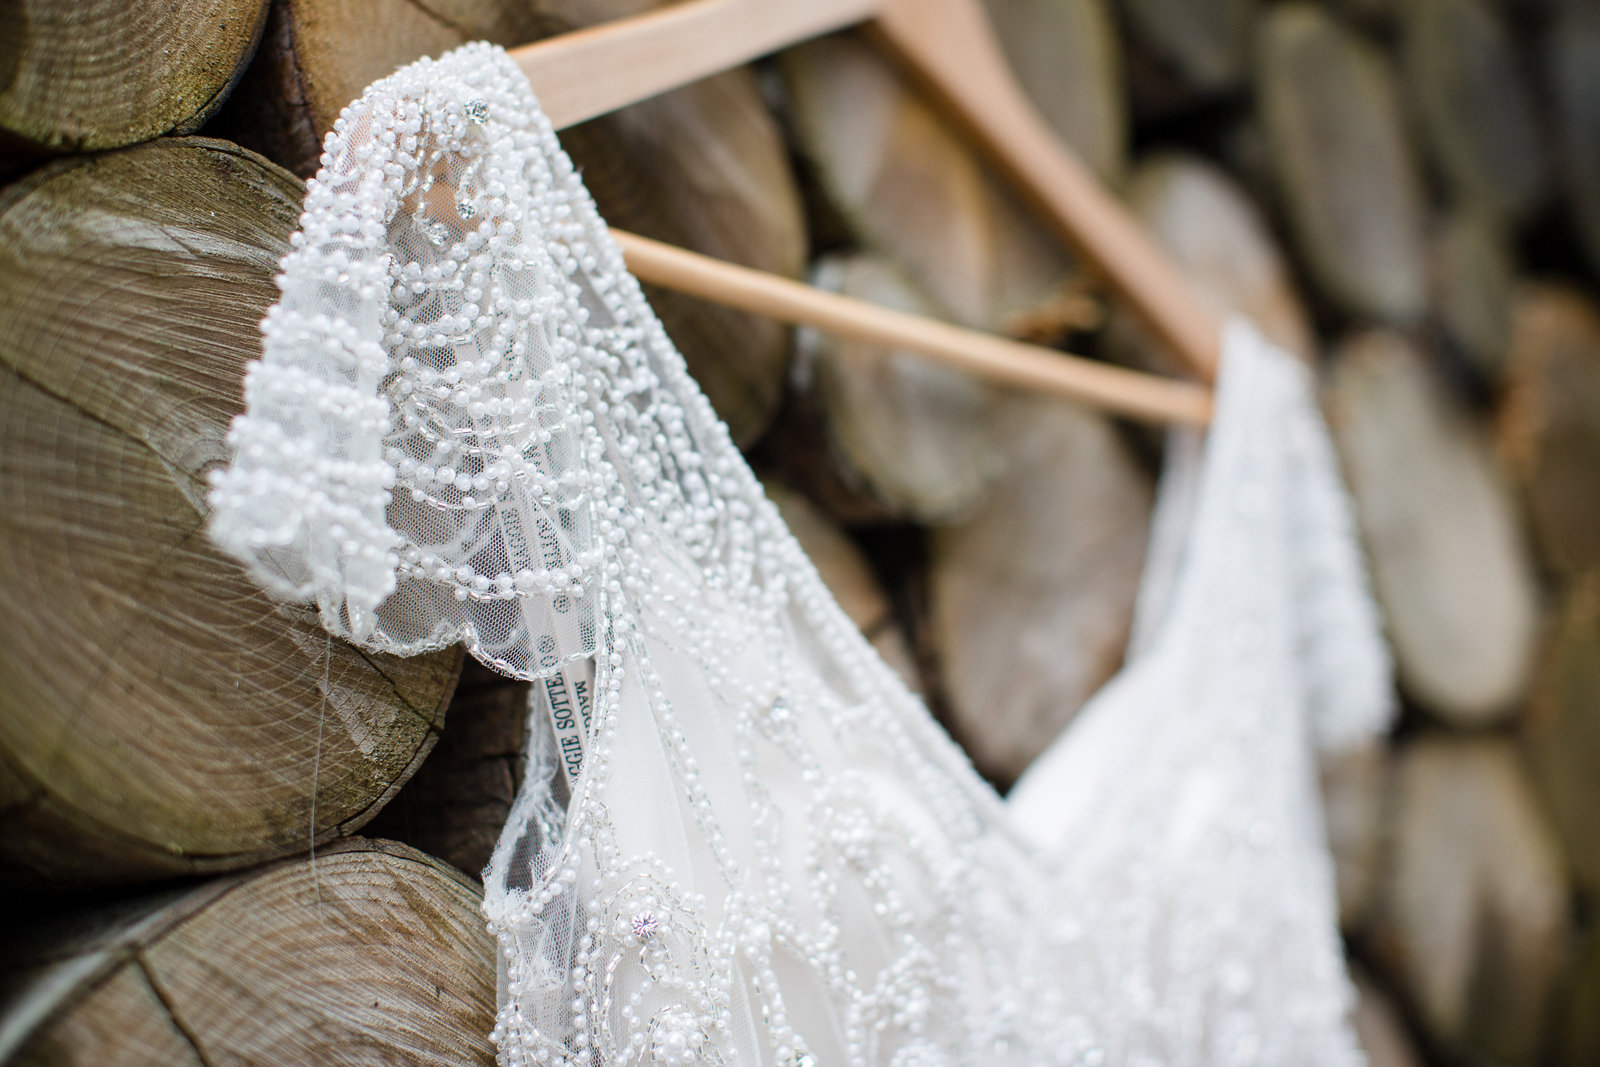 A close up of the fine beading and details of this stunning Jenny Packham  wedding dress at Southend Barns hanging on the log wall in the garden on this wedding day.